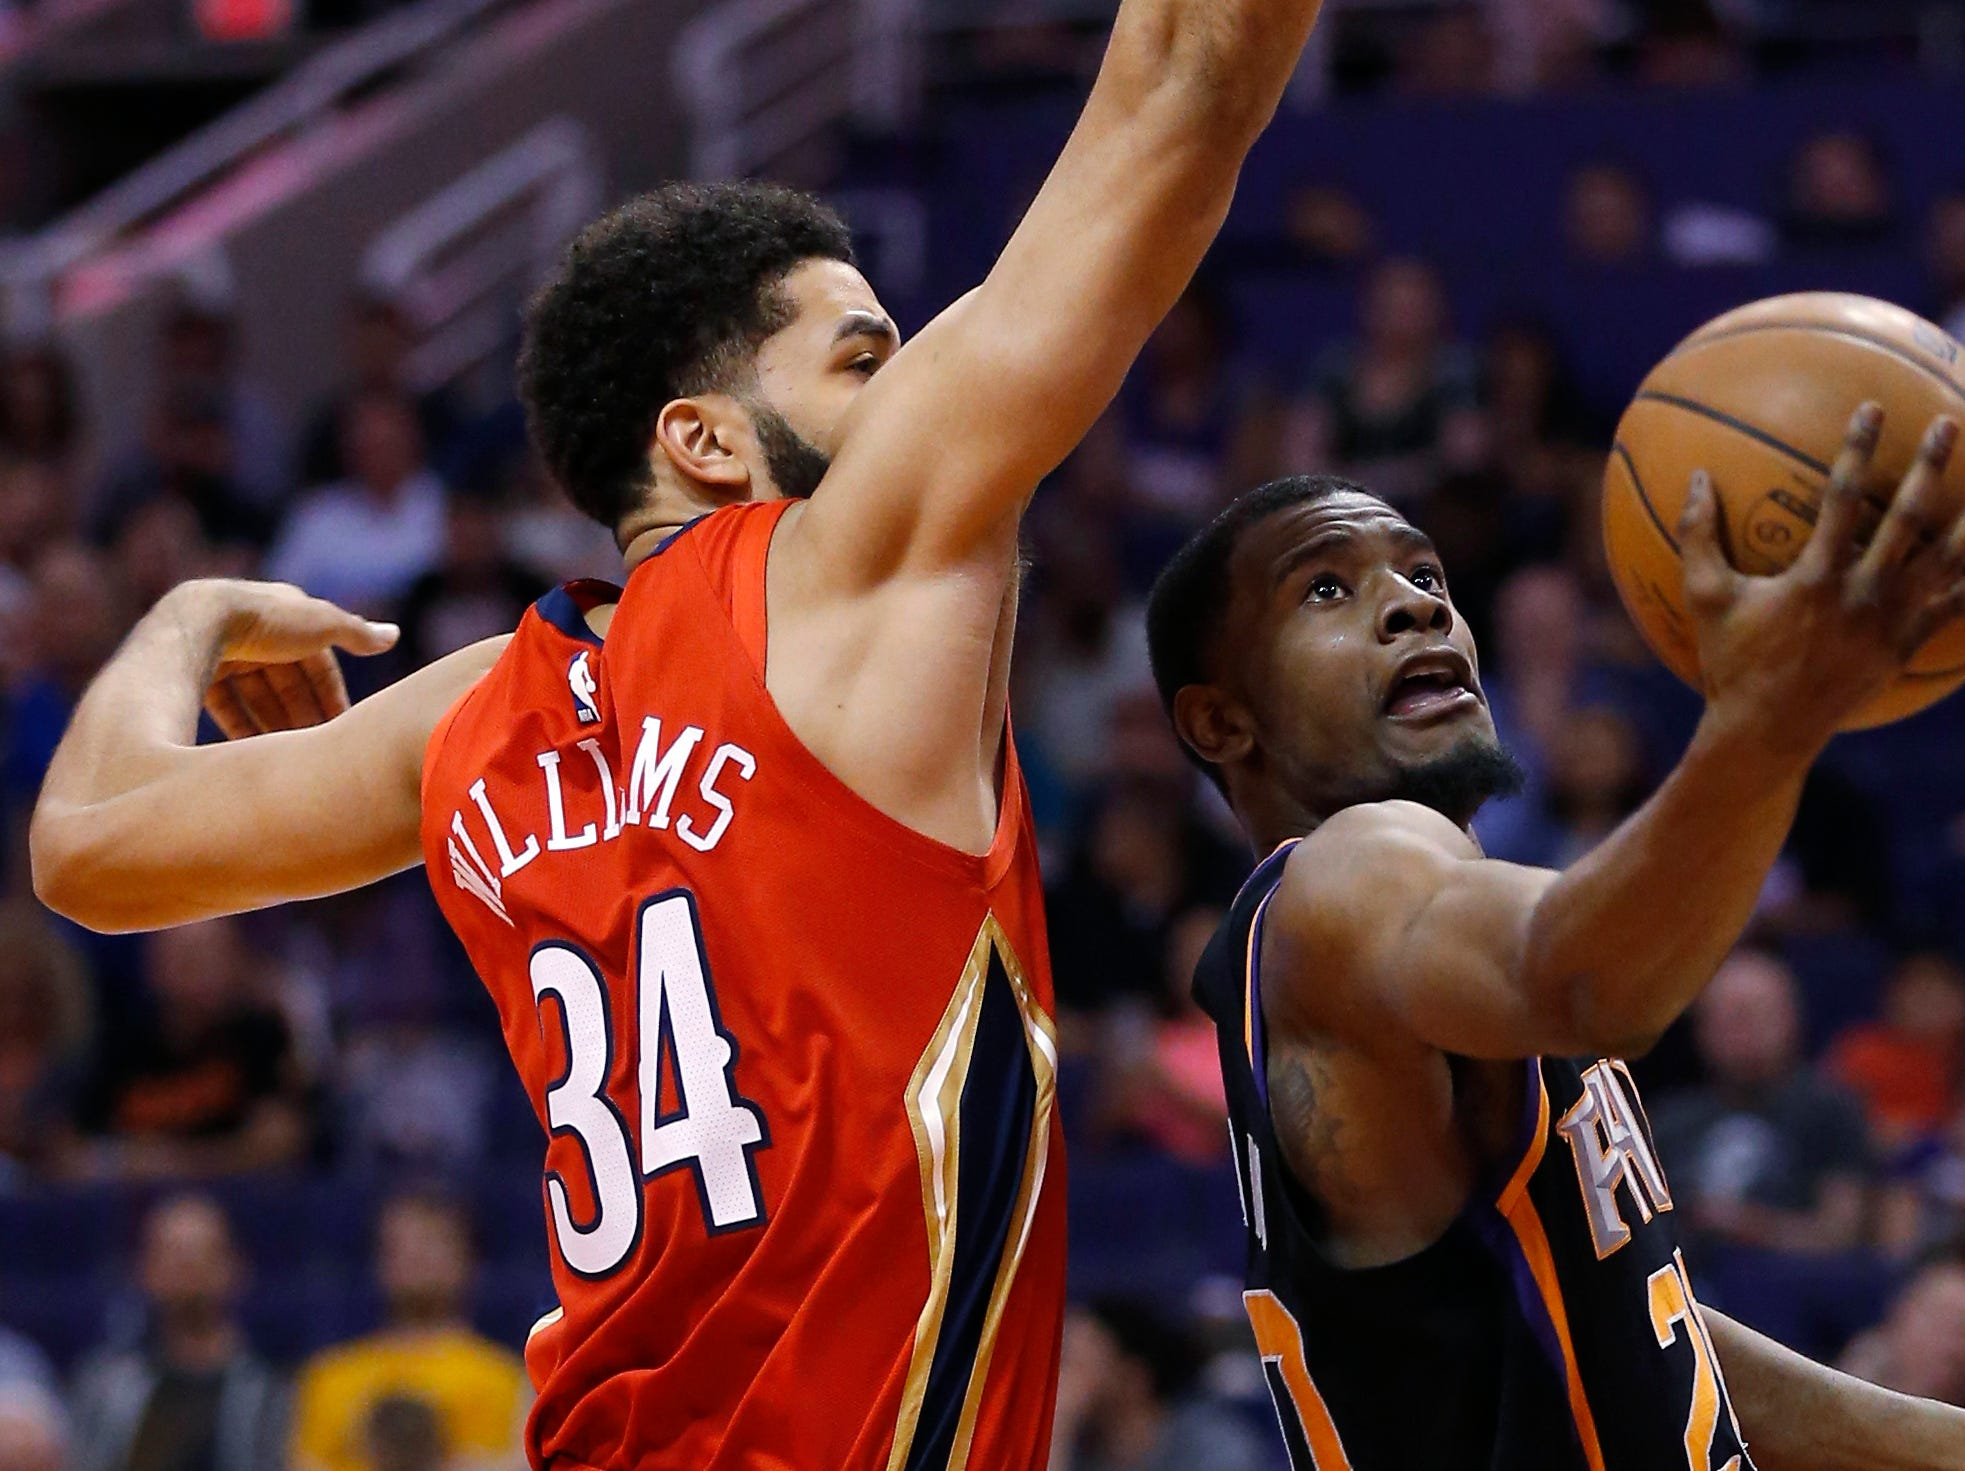 Phoenix Suns forward Josh Jackson drives past New Orleans Pelicans guard Kenrich Williams (34) during the second half of an NBA basketball game Friday, April 5, 2019, in Phoenix. The Suns defeated the Pelicans 133-126 in overtime. (AP Photo/Rick Scuteri)